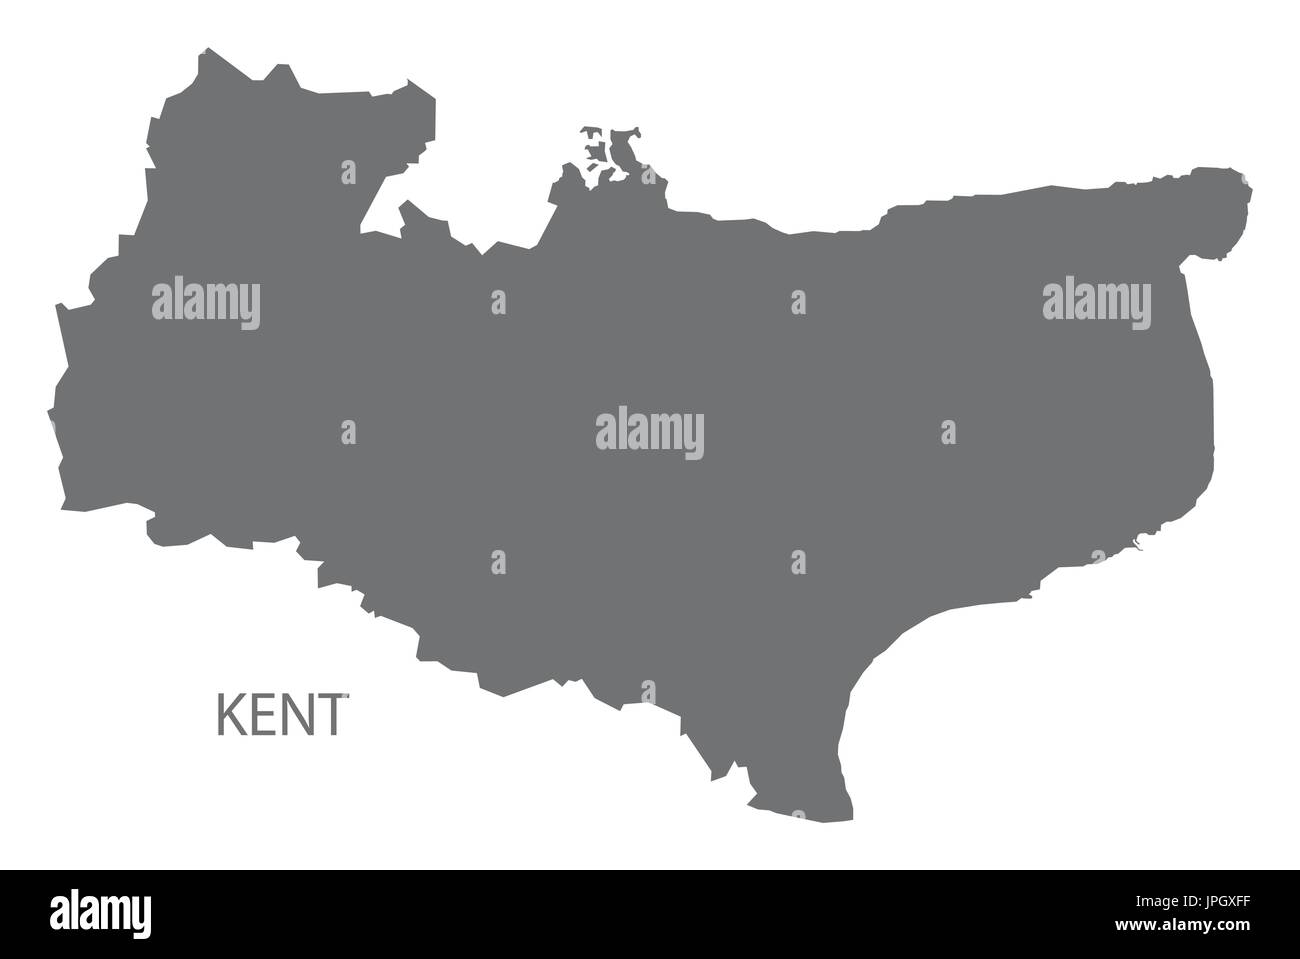 Map Of England Kent.Kent County Map England Uk Grey Illustration Silhouette Shape Stock